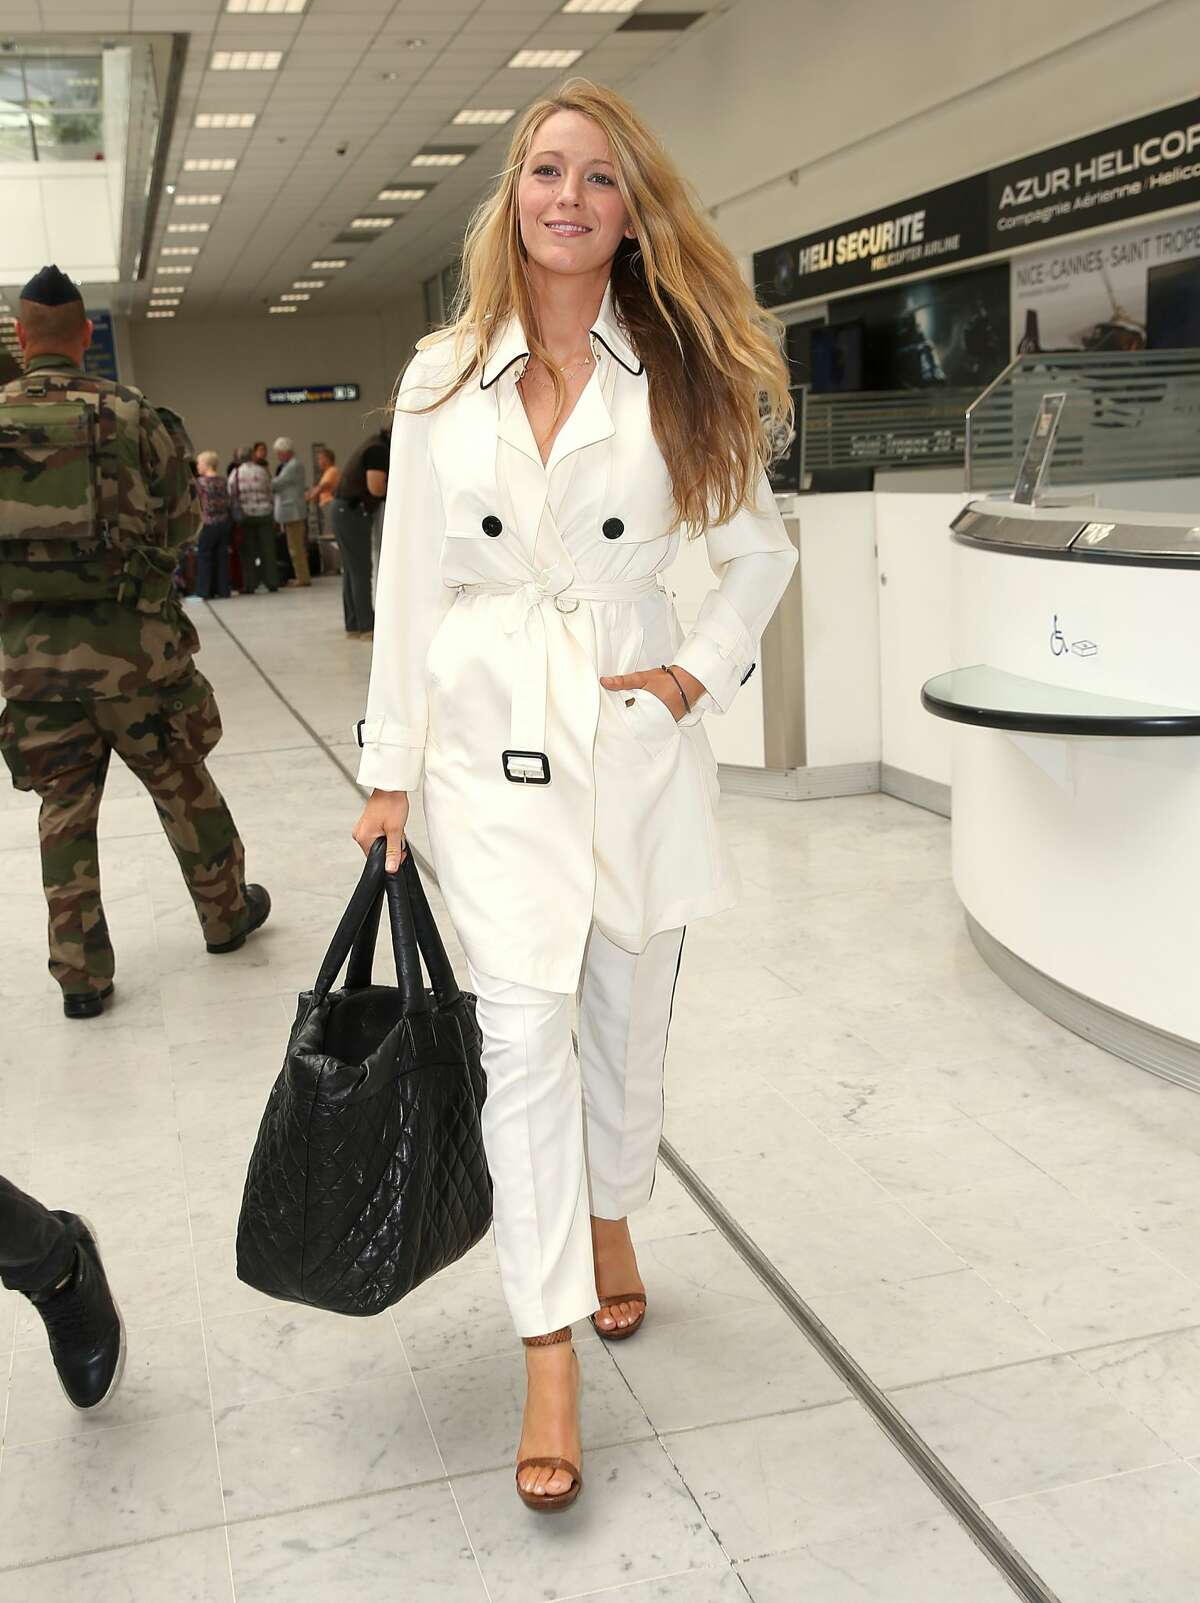 Blake Lively arrives at Nice airport on May 9, 2016 in Nice, France.